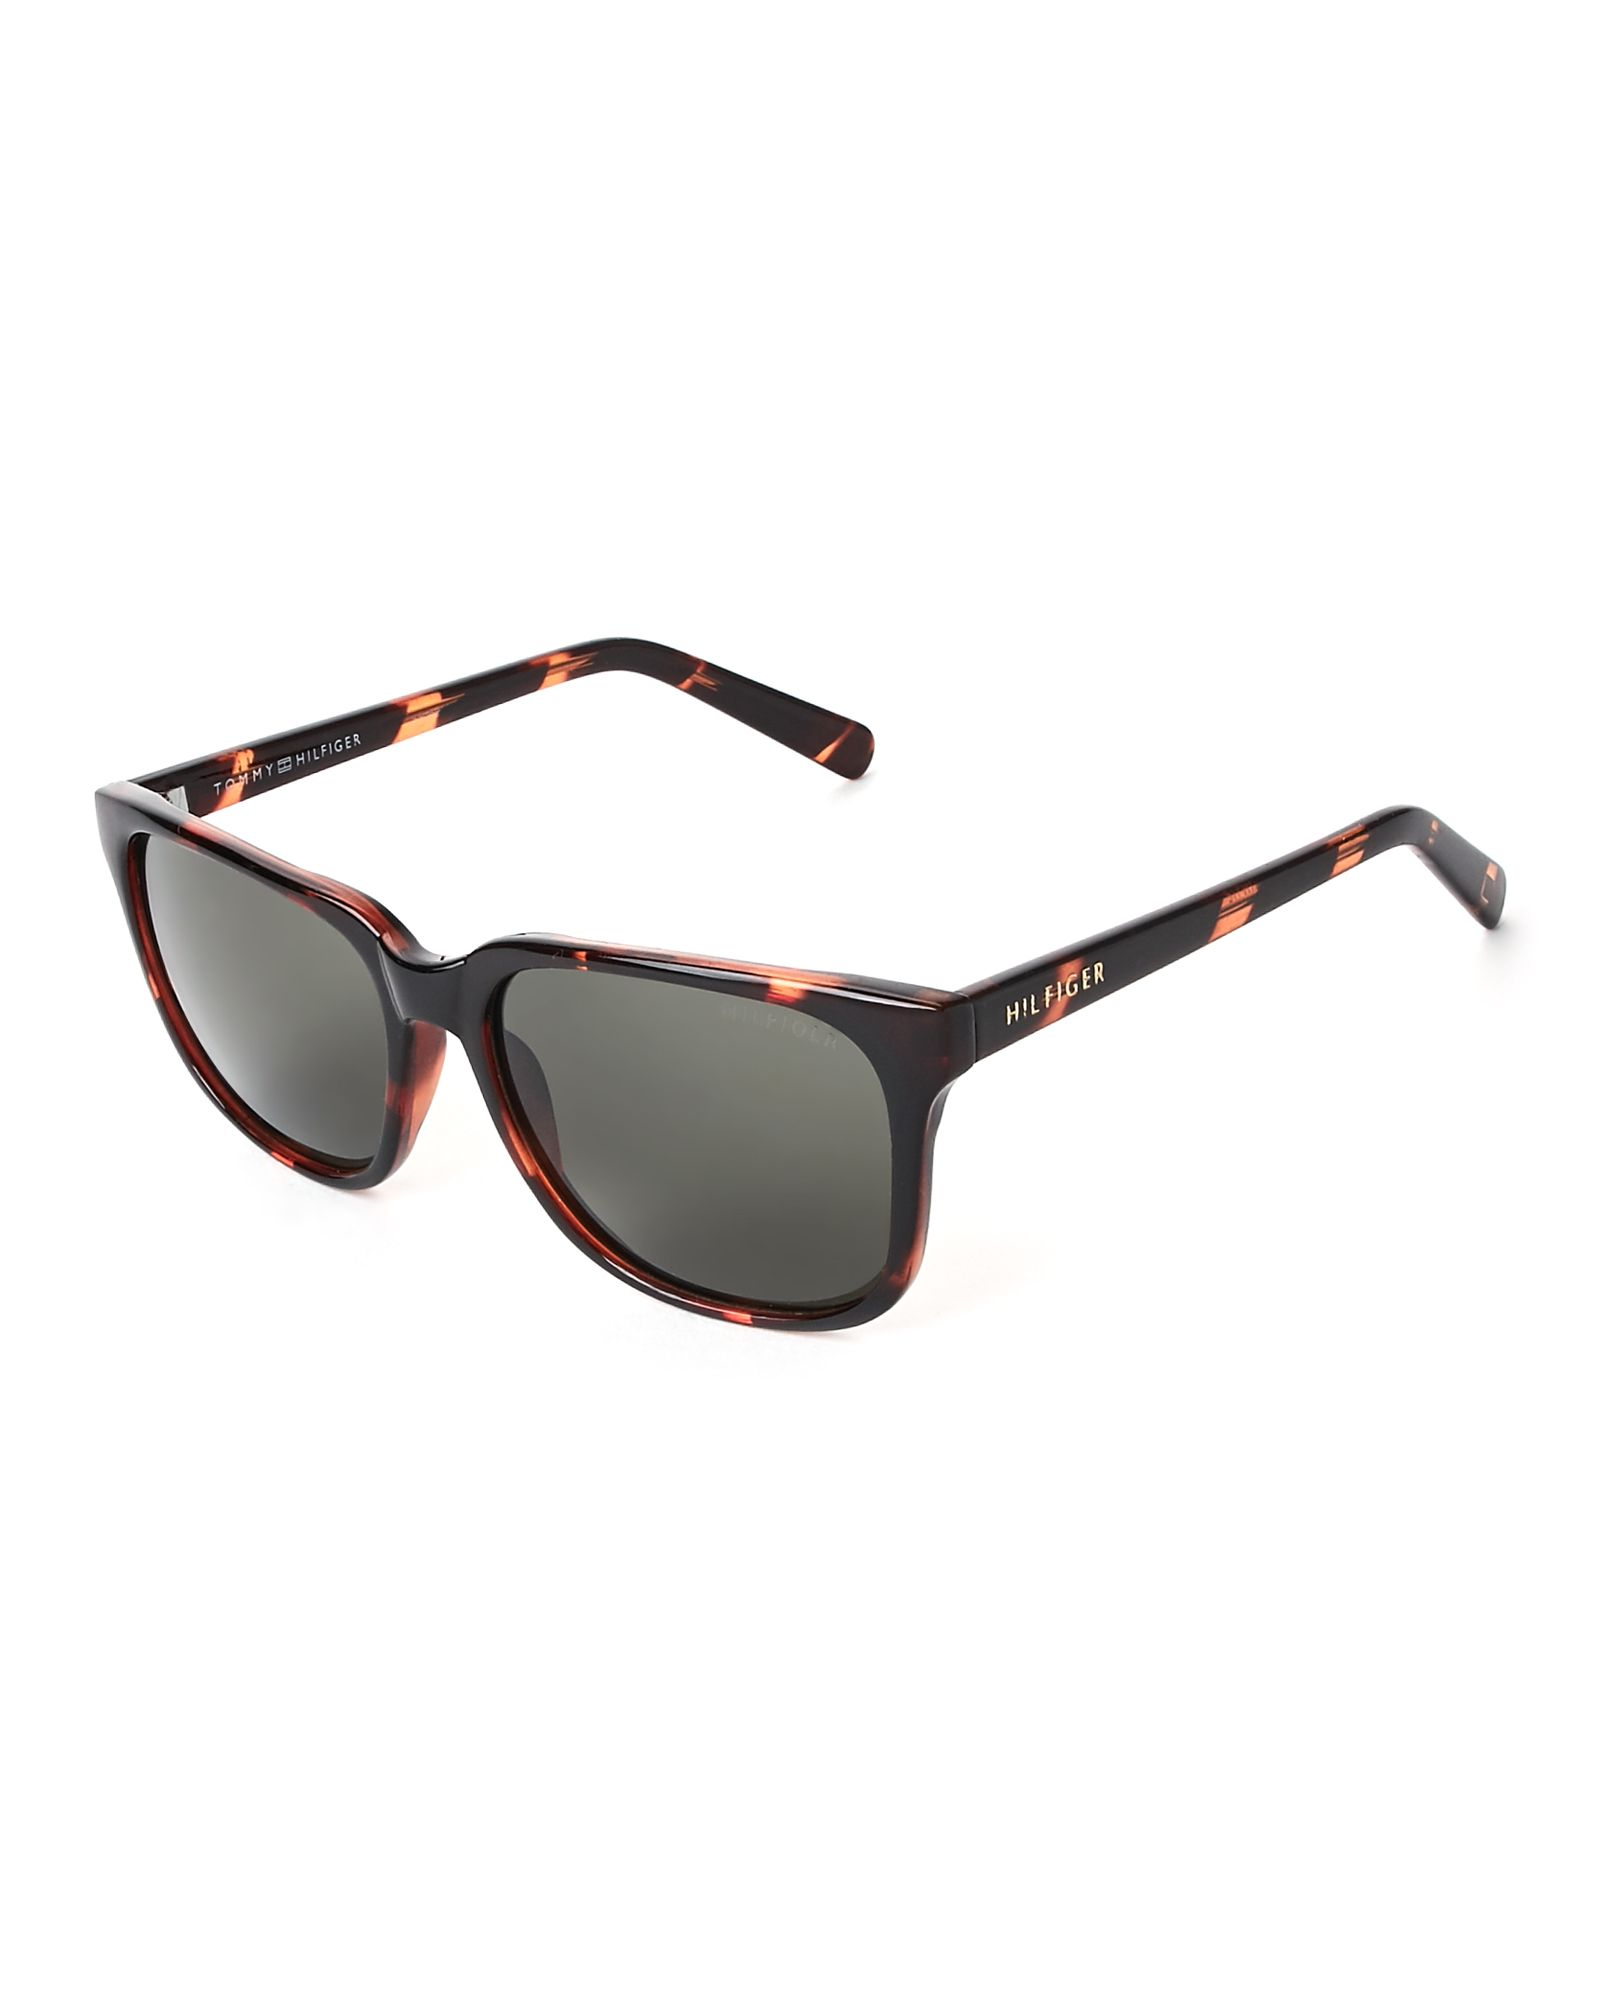 56f62a0cffd5 Tortoiseshell-Look Jared Square Sunglasses | *Apparel & Accessories ...